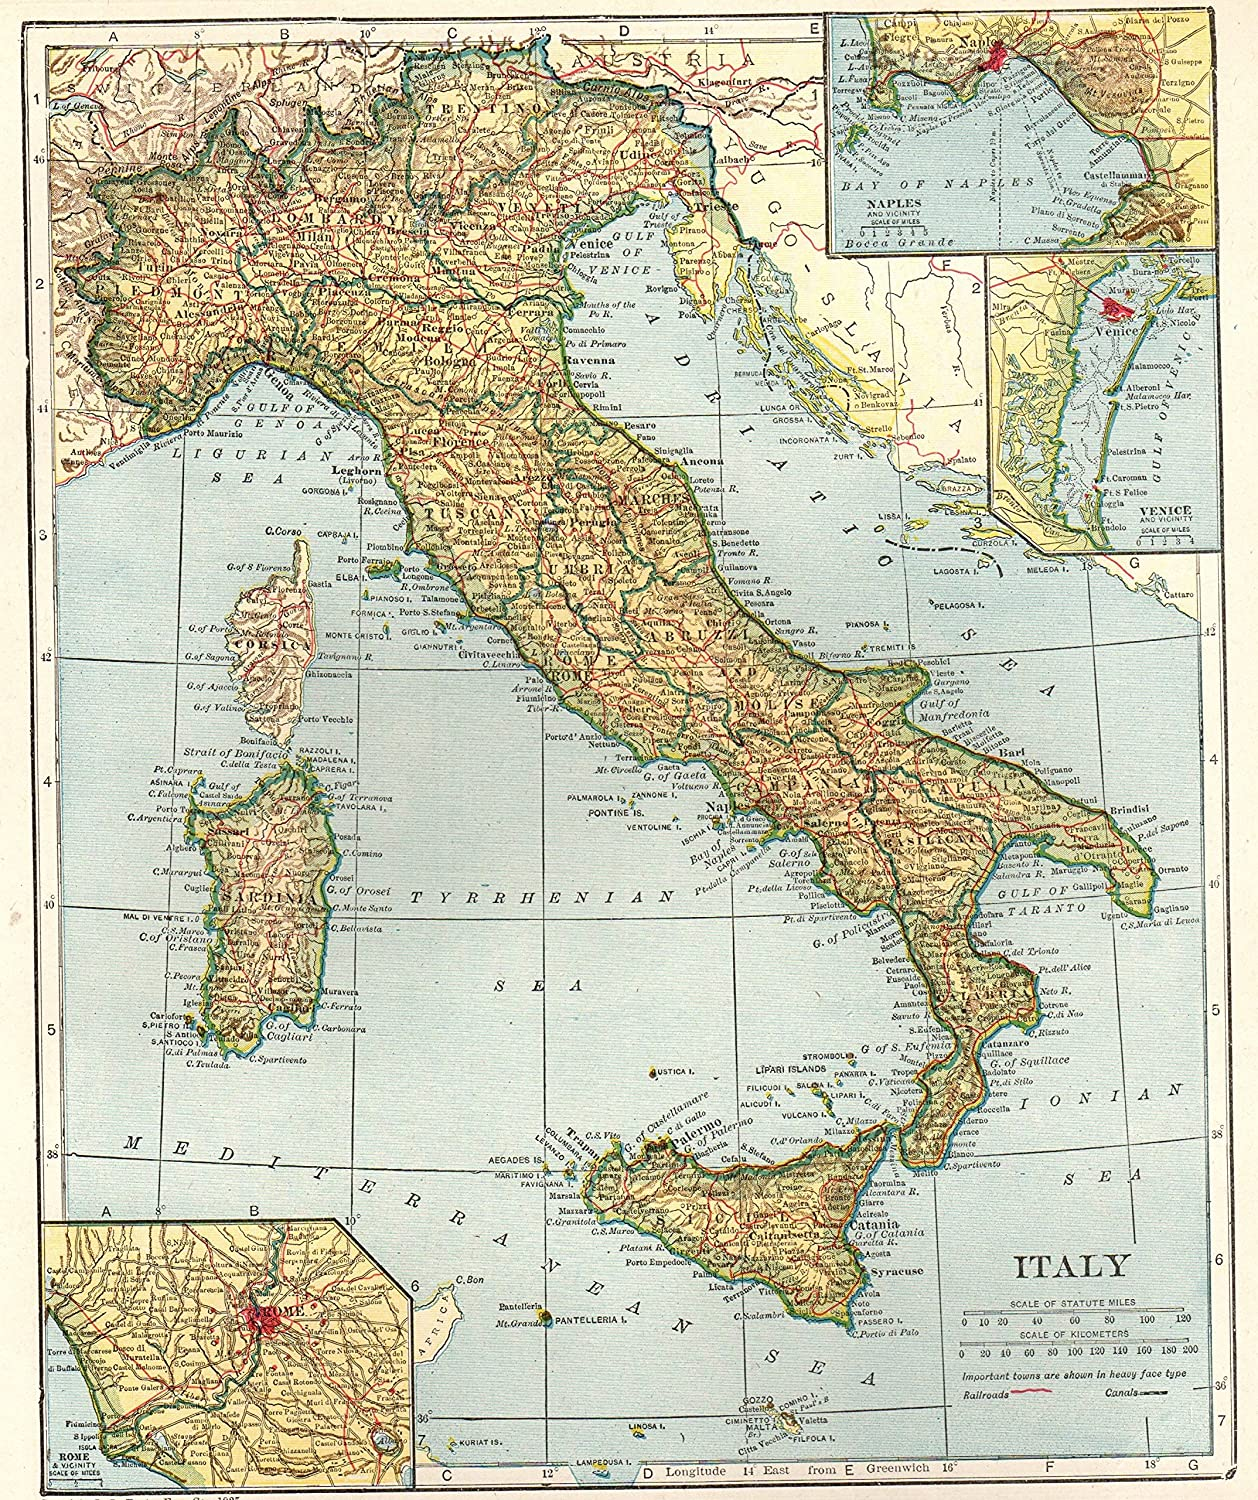 Talamone Italy Map.Amazon Com 1926 Antique Italy Map Original Vintage Map Of Italty